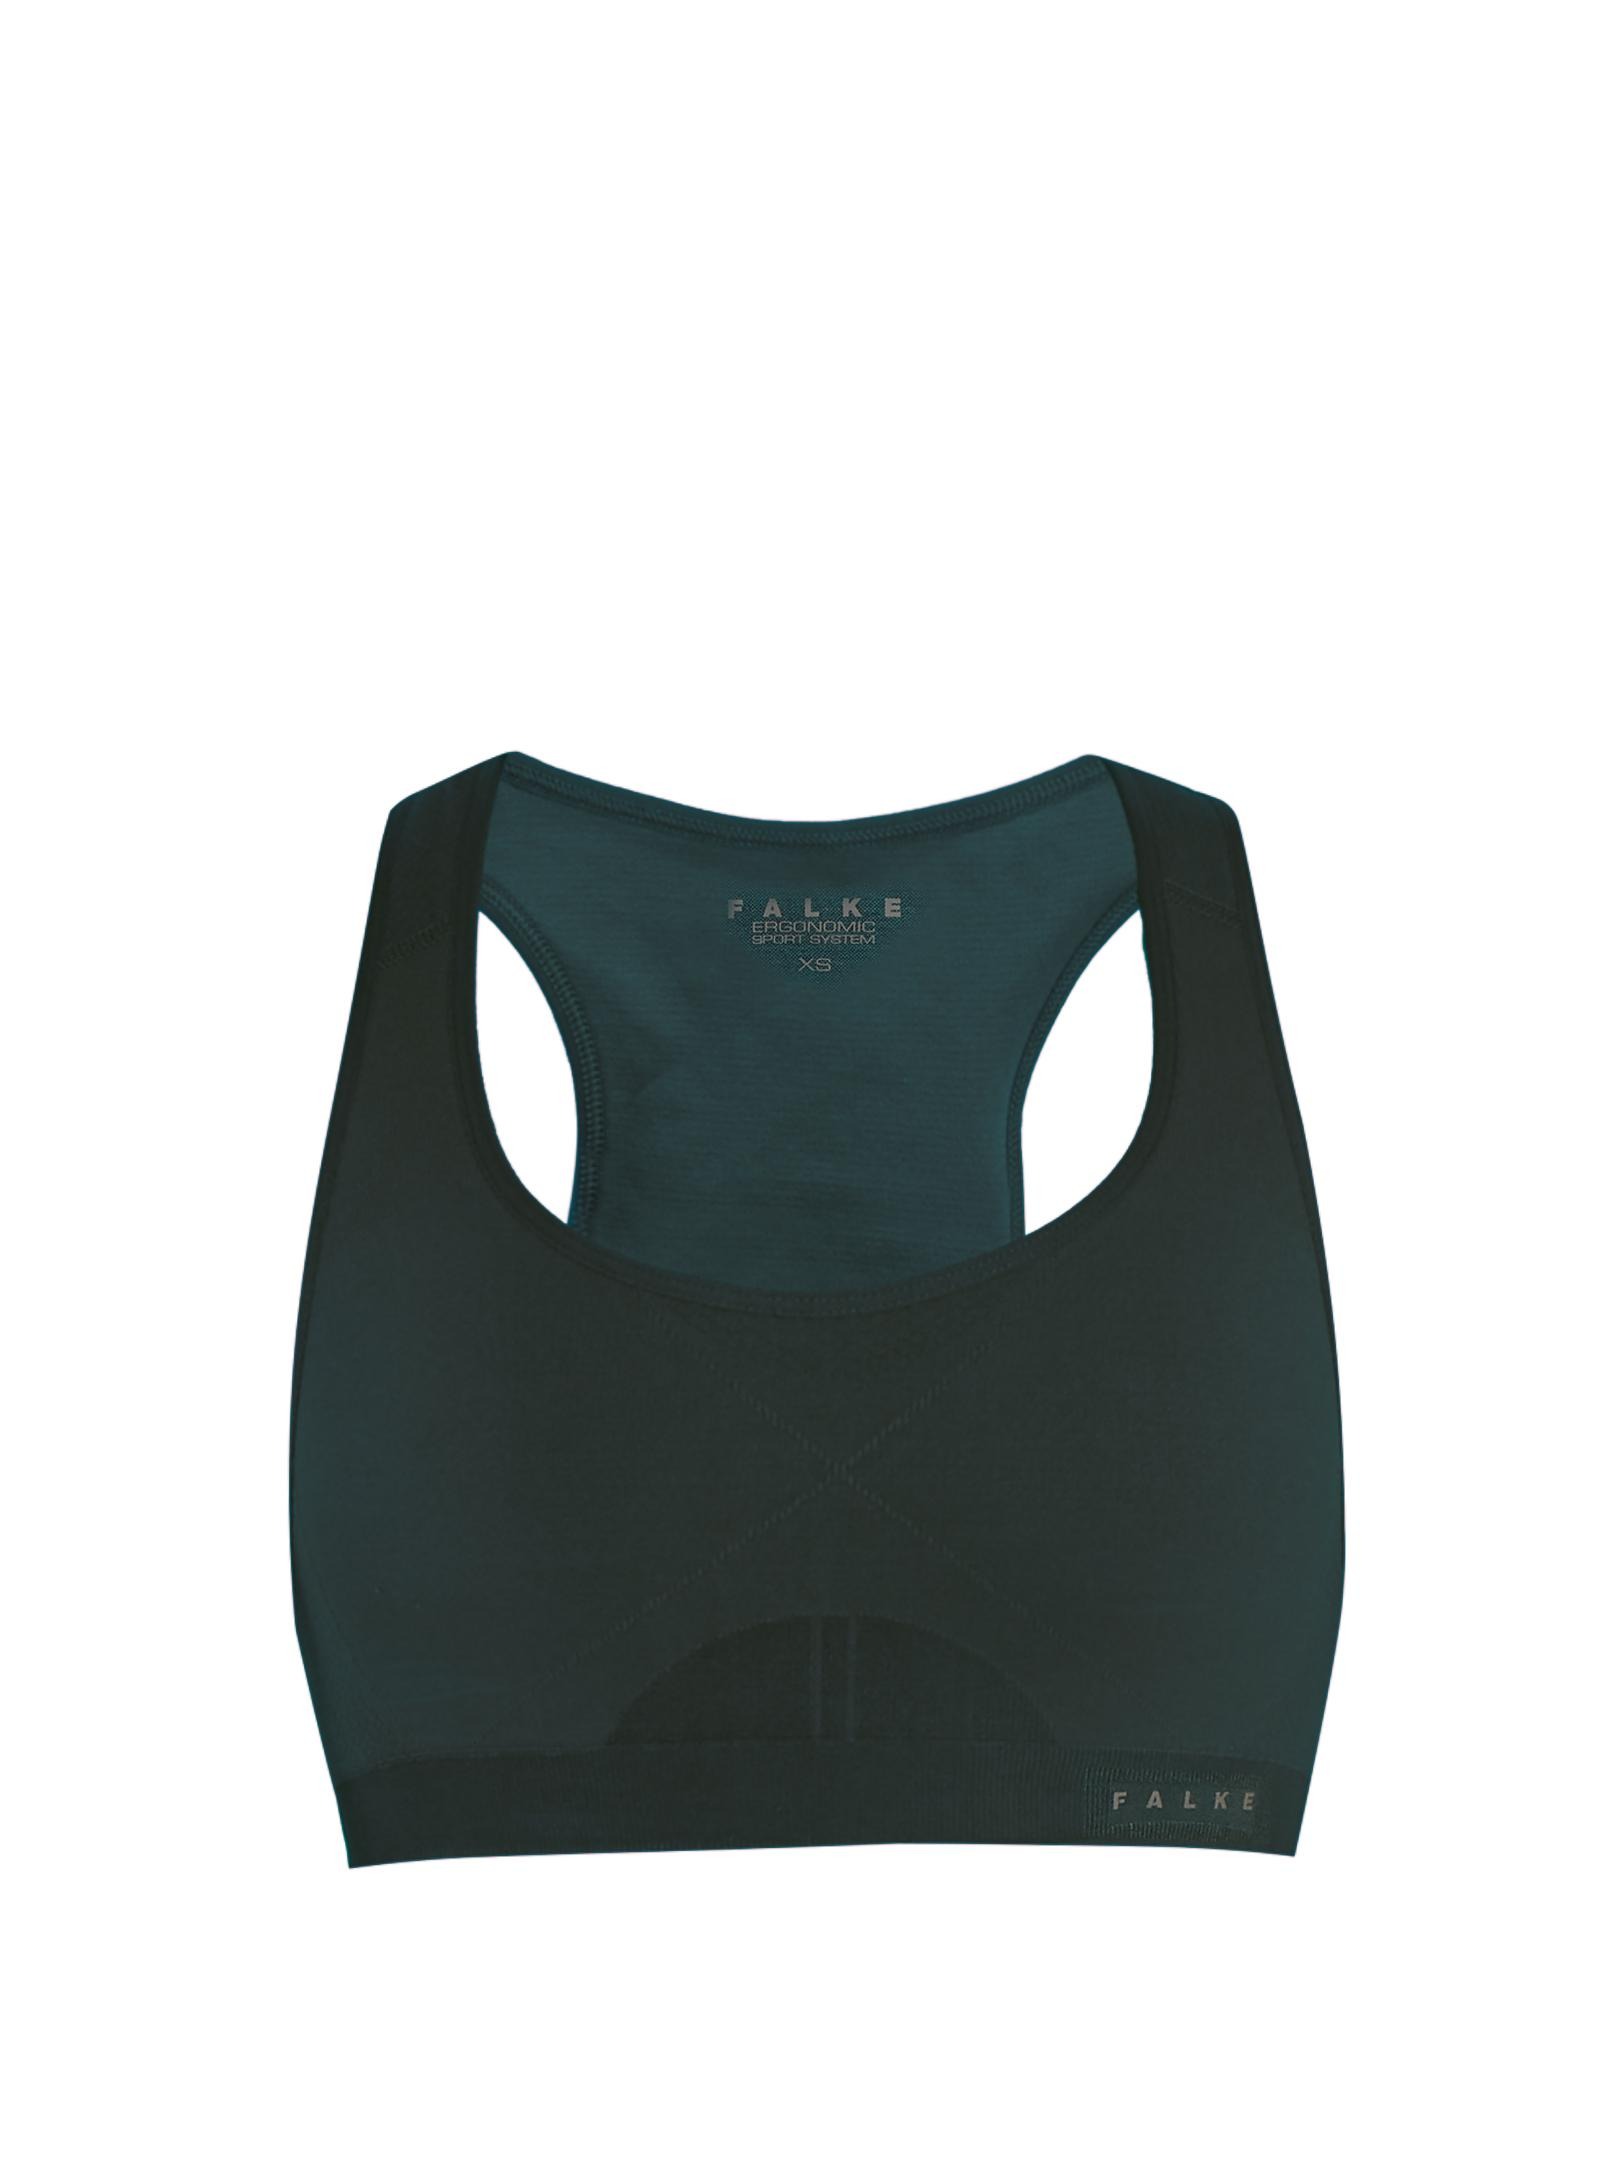 02ca6efc41bae Falke Madison Seamless Performance Bra in Green - Lyst